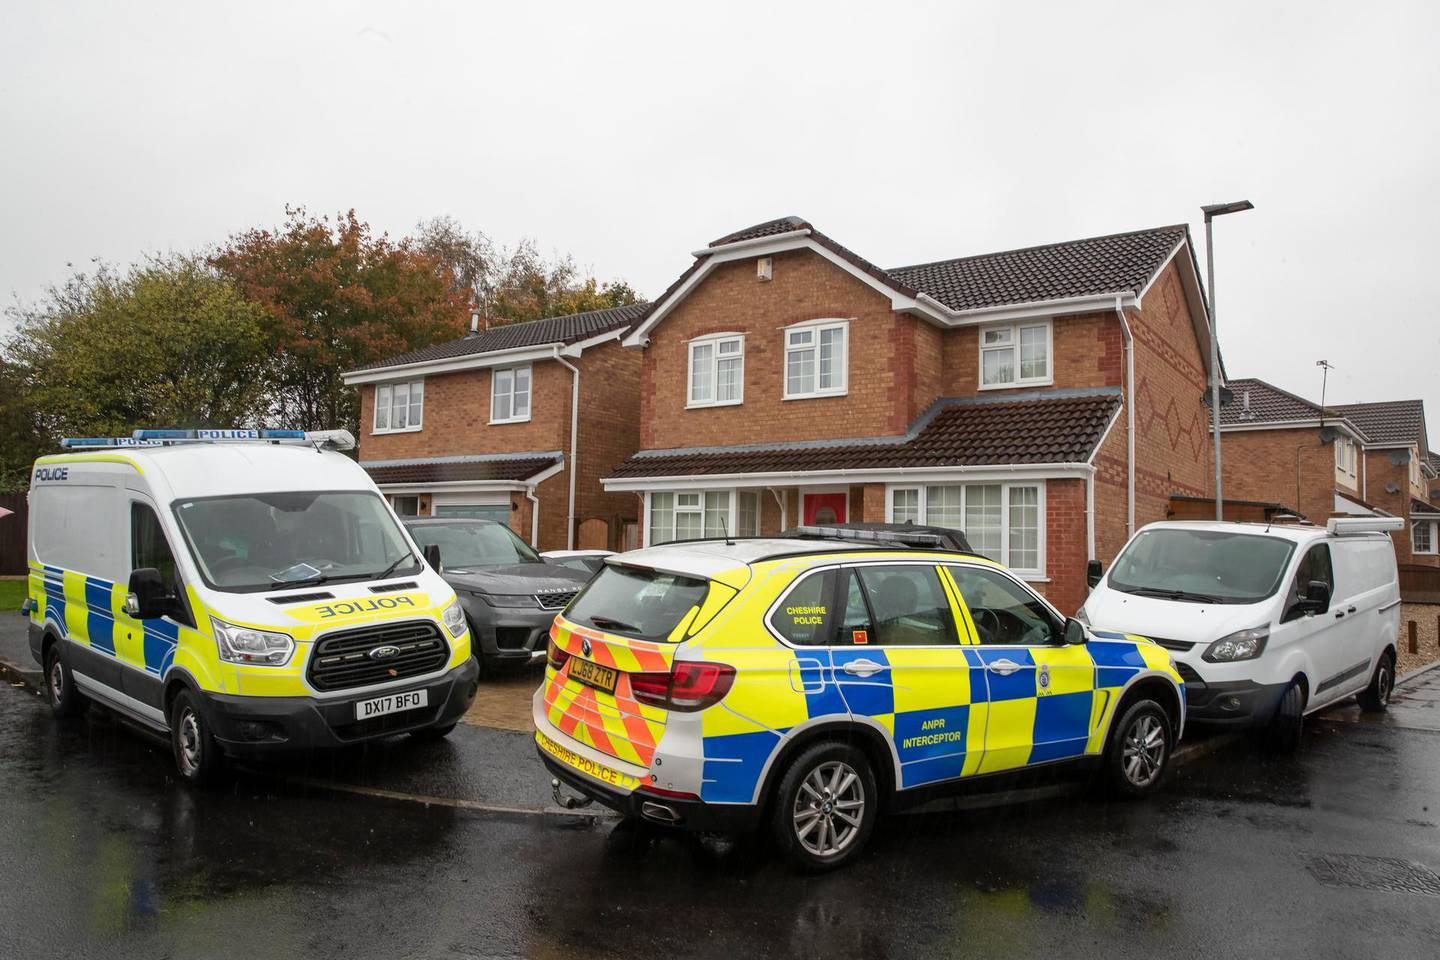 Police outside the house of Joanna and Thomas Maher in Warrington, who have said they had sold the Scania lorry cab, which is registered in Bulgaria, to a company in Ireland, after 39 migrants were found dead in a refrigerated trailer in Grays in the early hours of Wednesday.